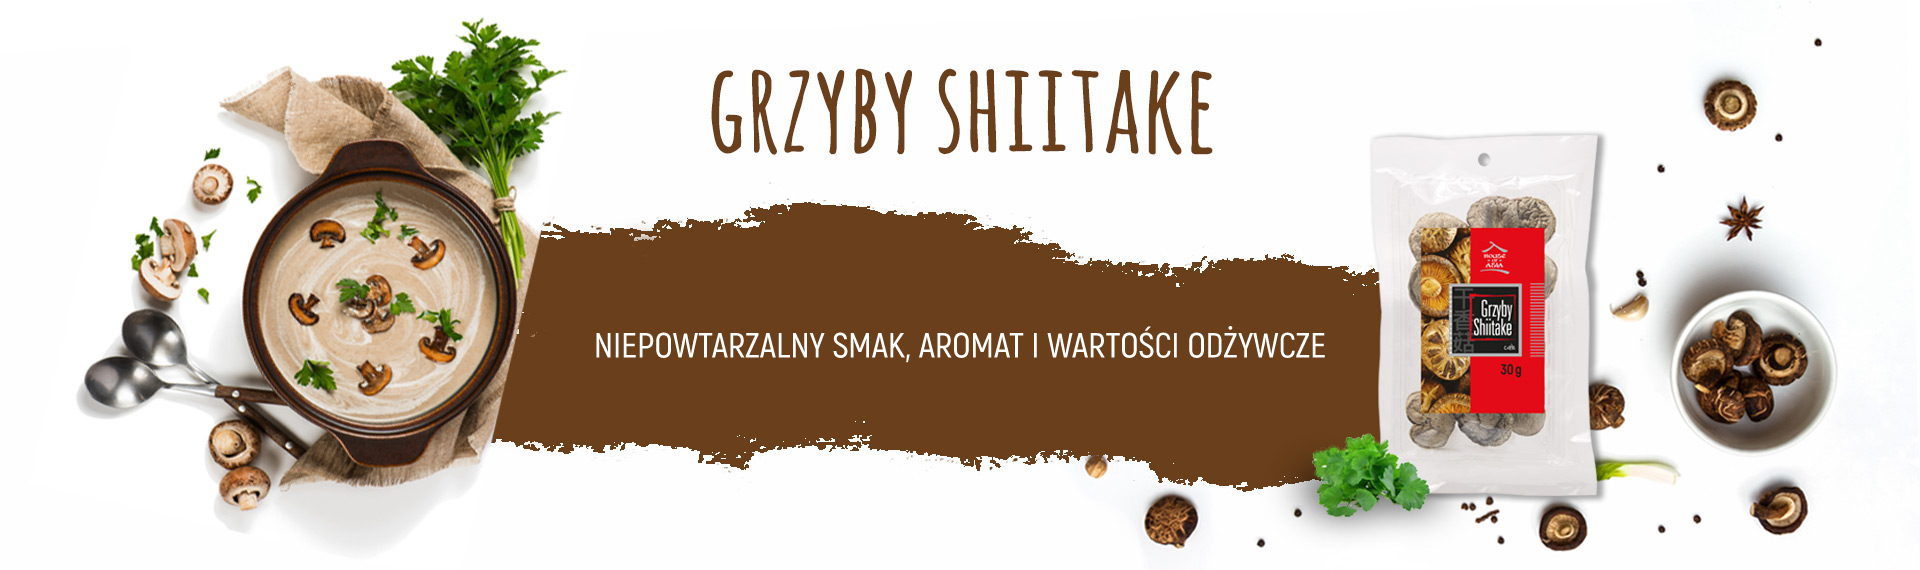 grzyby-shiitake-house_of_asia